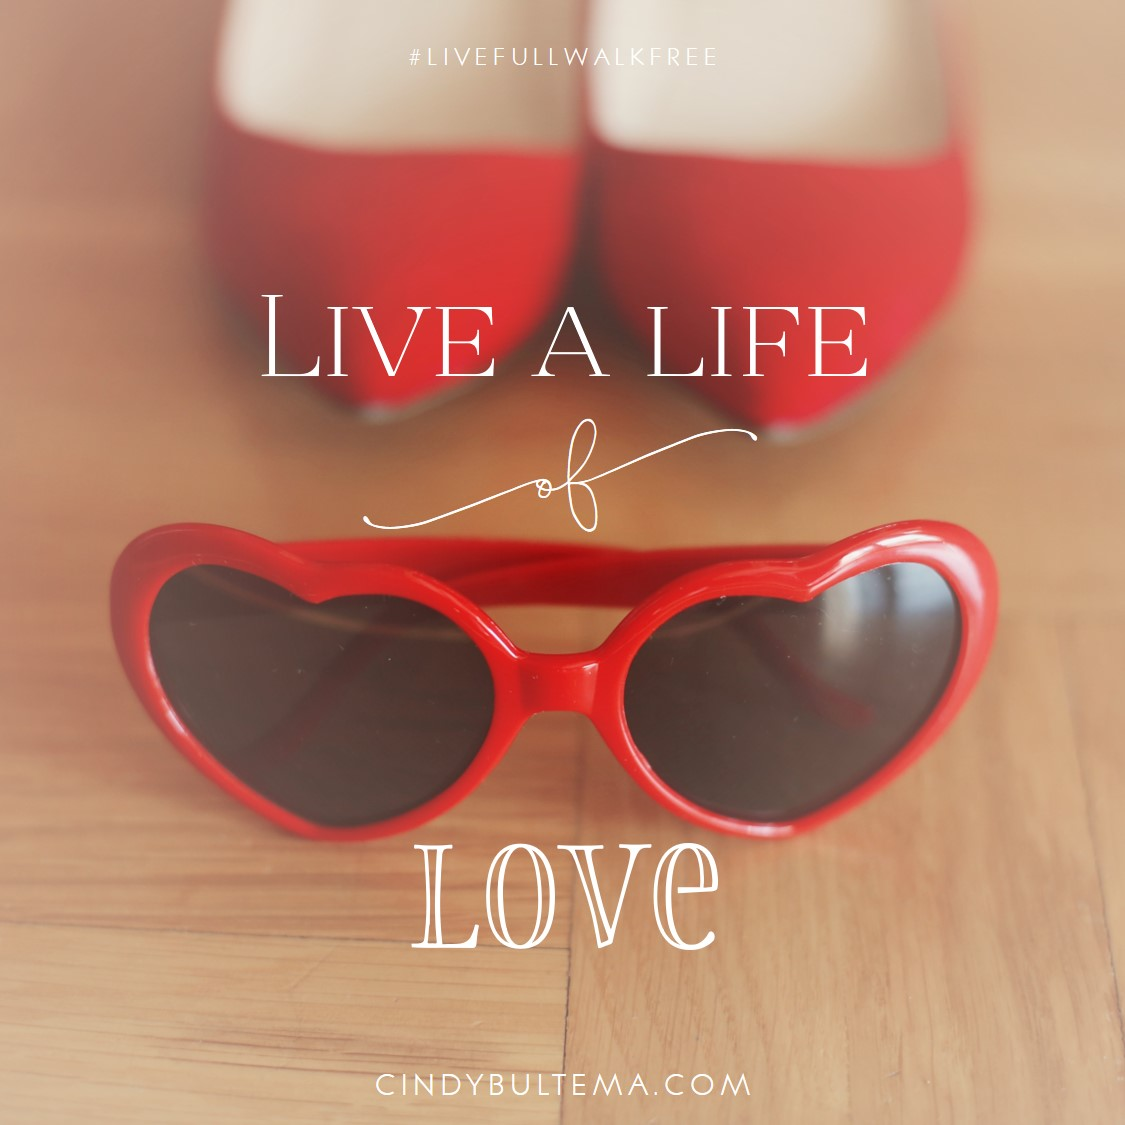 Live a life of love by Cindy Bultema. #livefullwalkfree